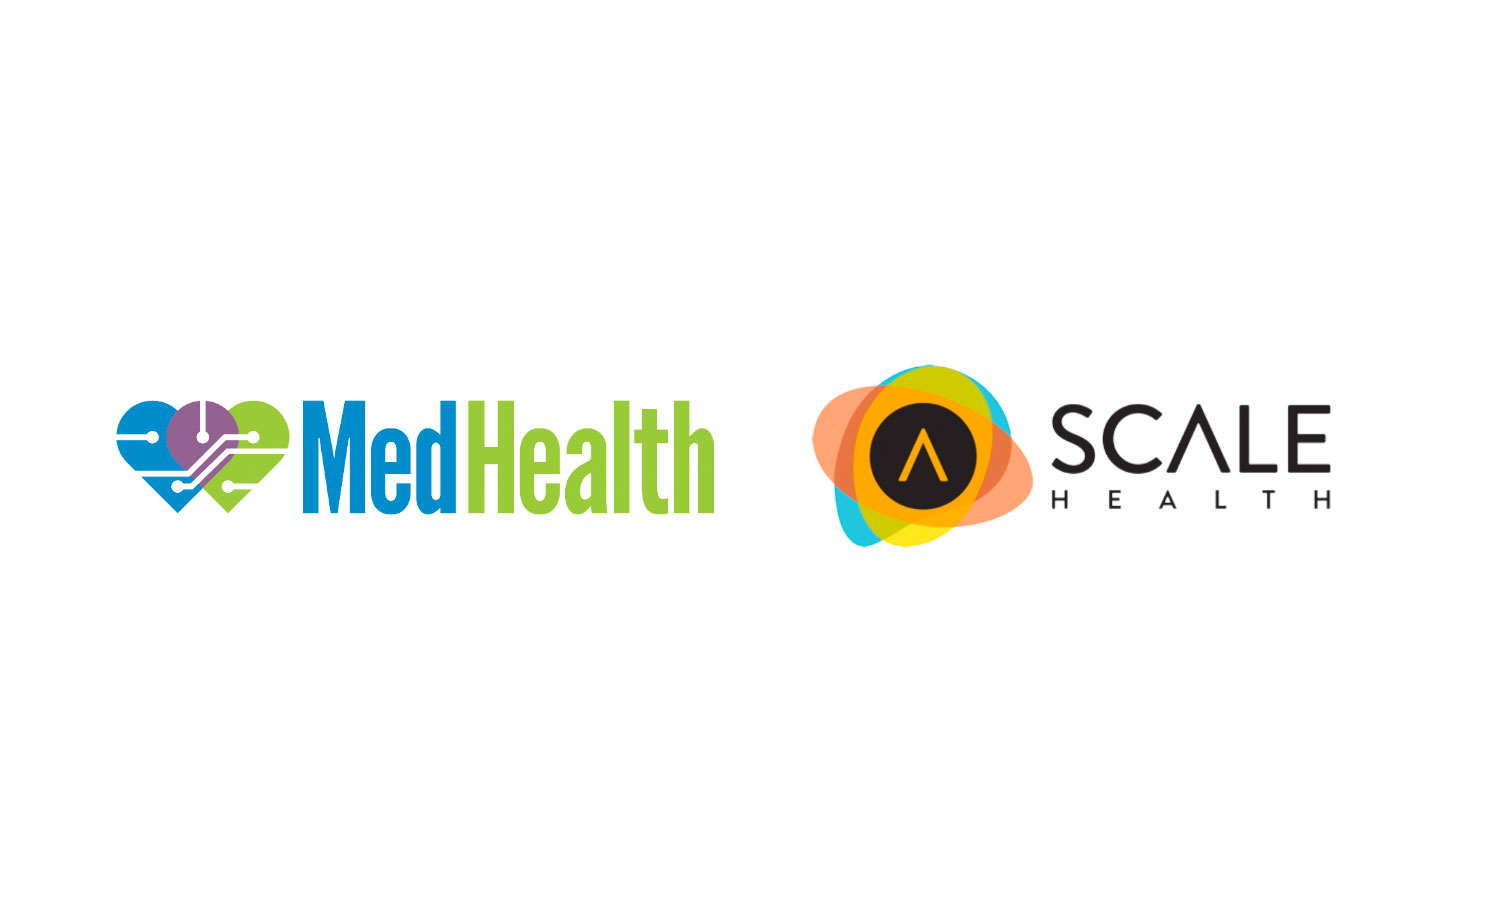 MedHealth and Scale Health Logos